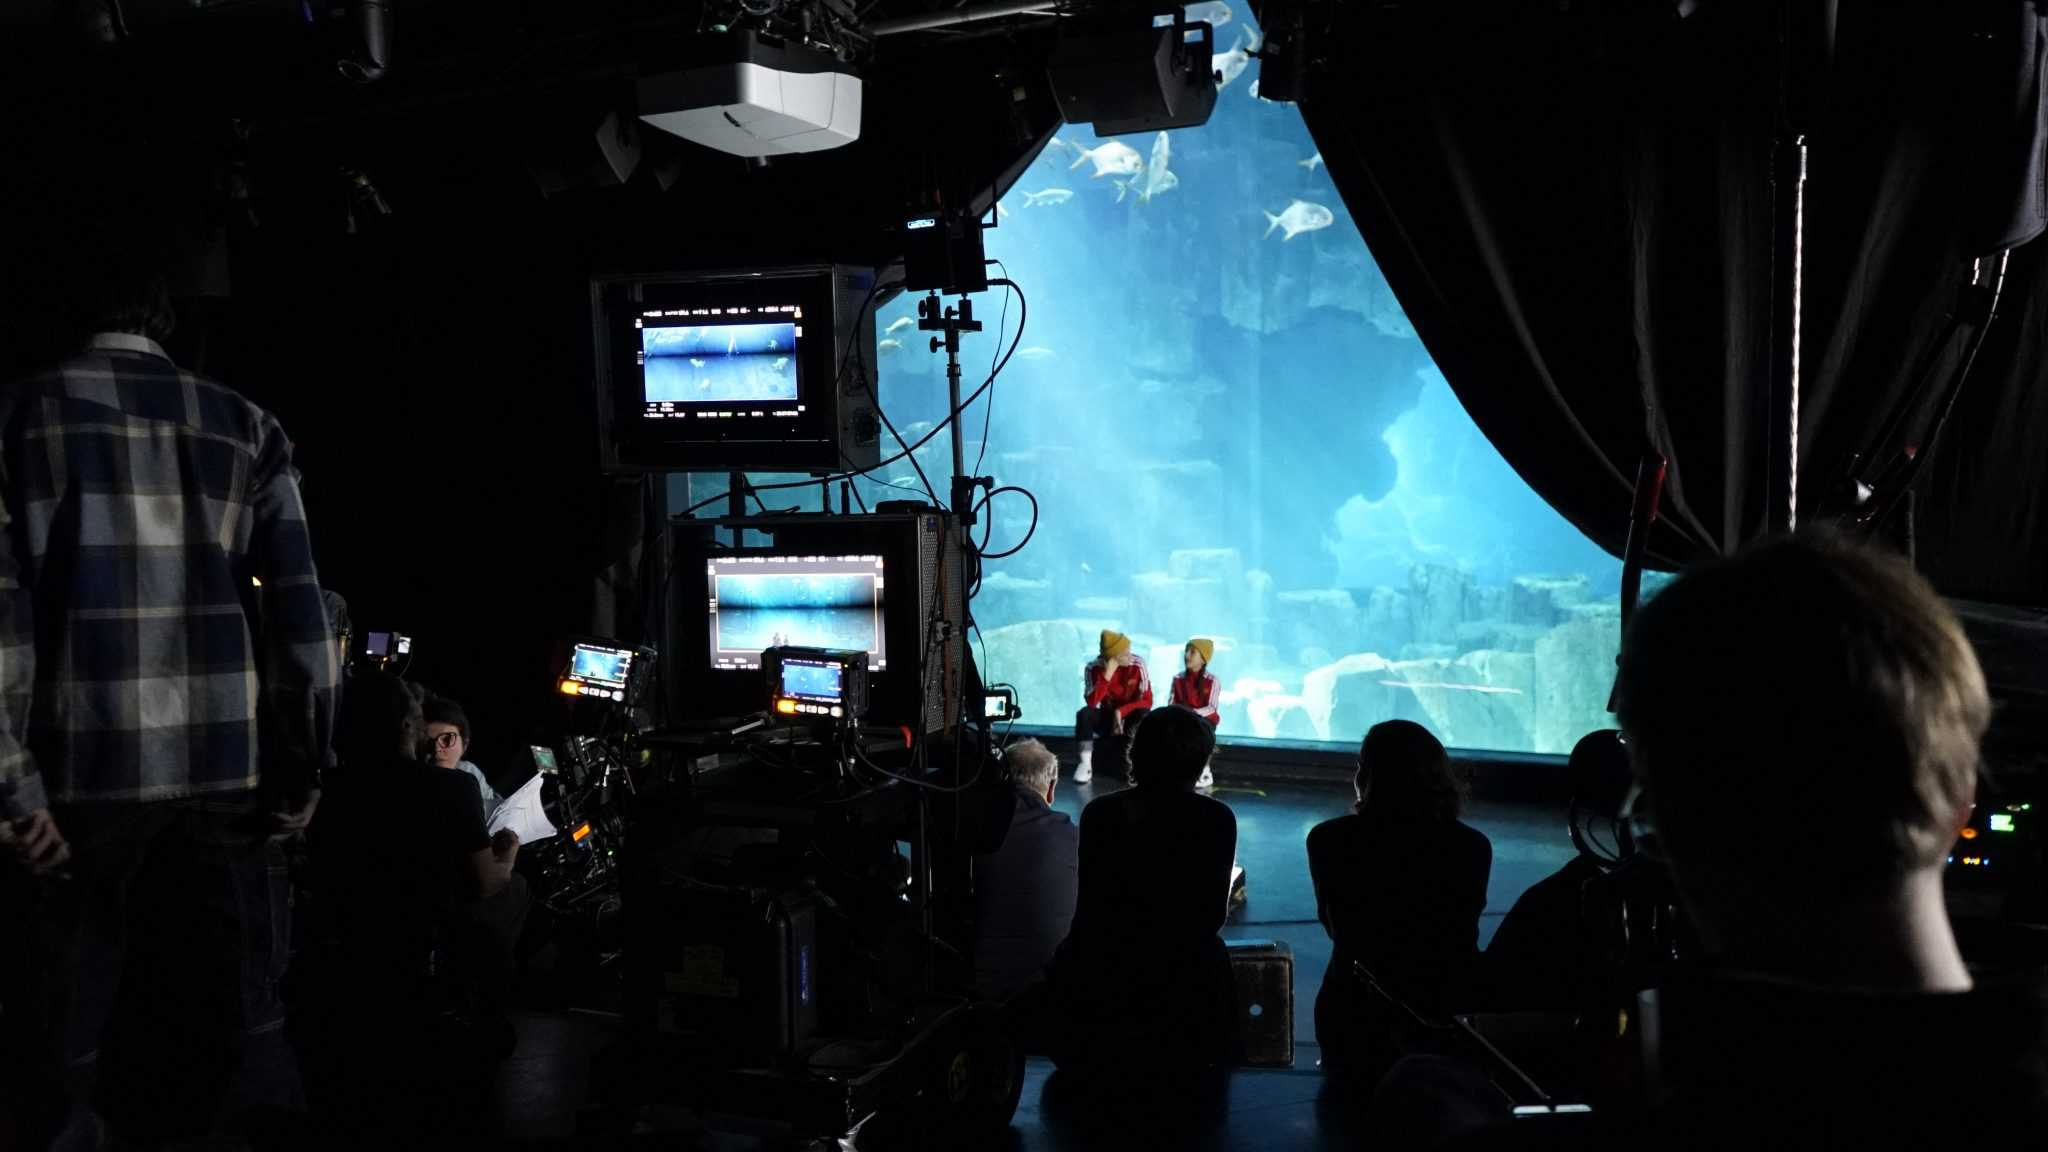 Tournage au Lounge - Aquarium de Paris